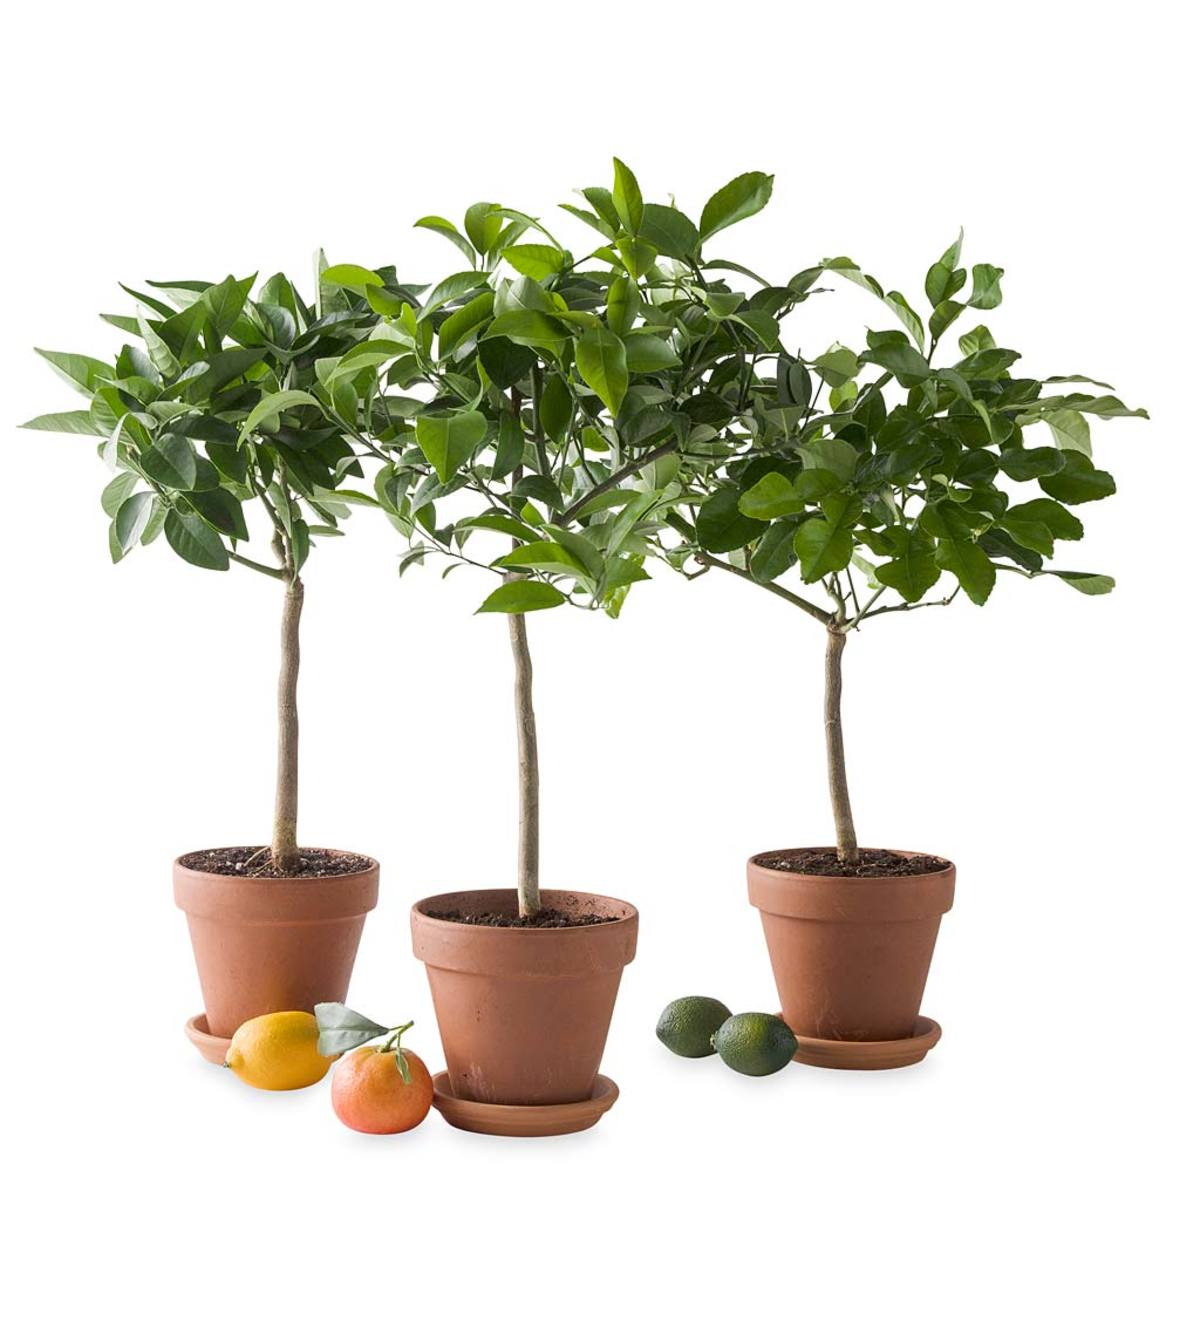 Miniature Potted Citrus Tree